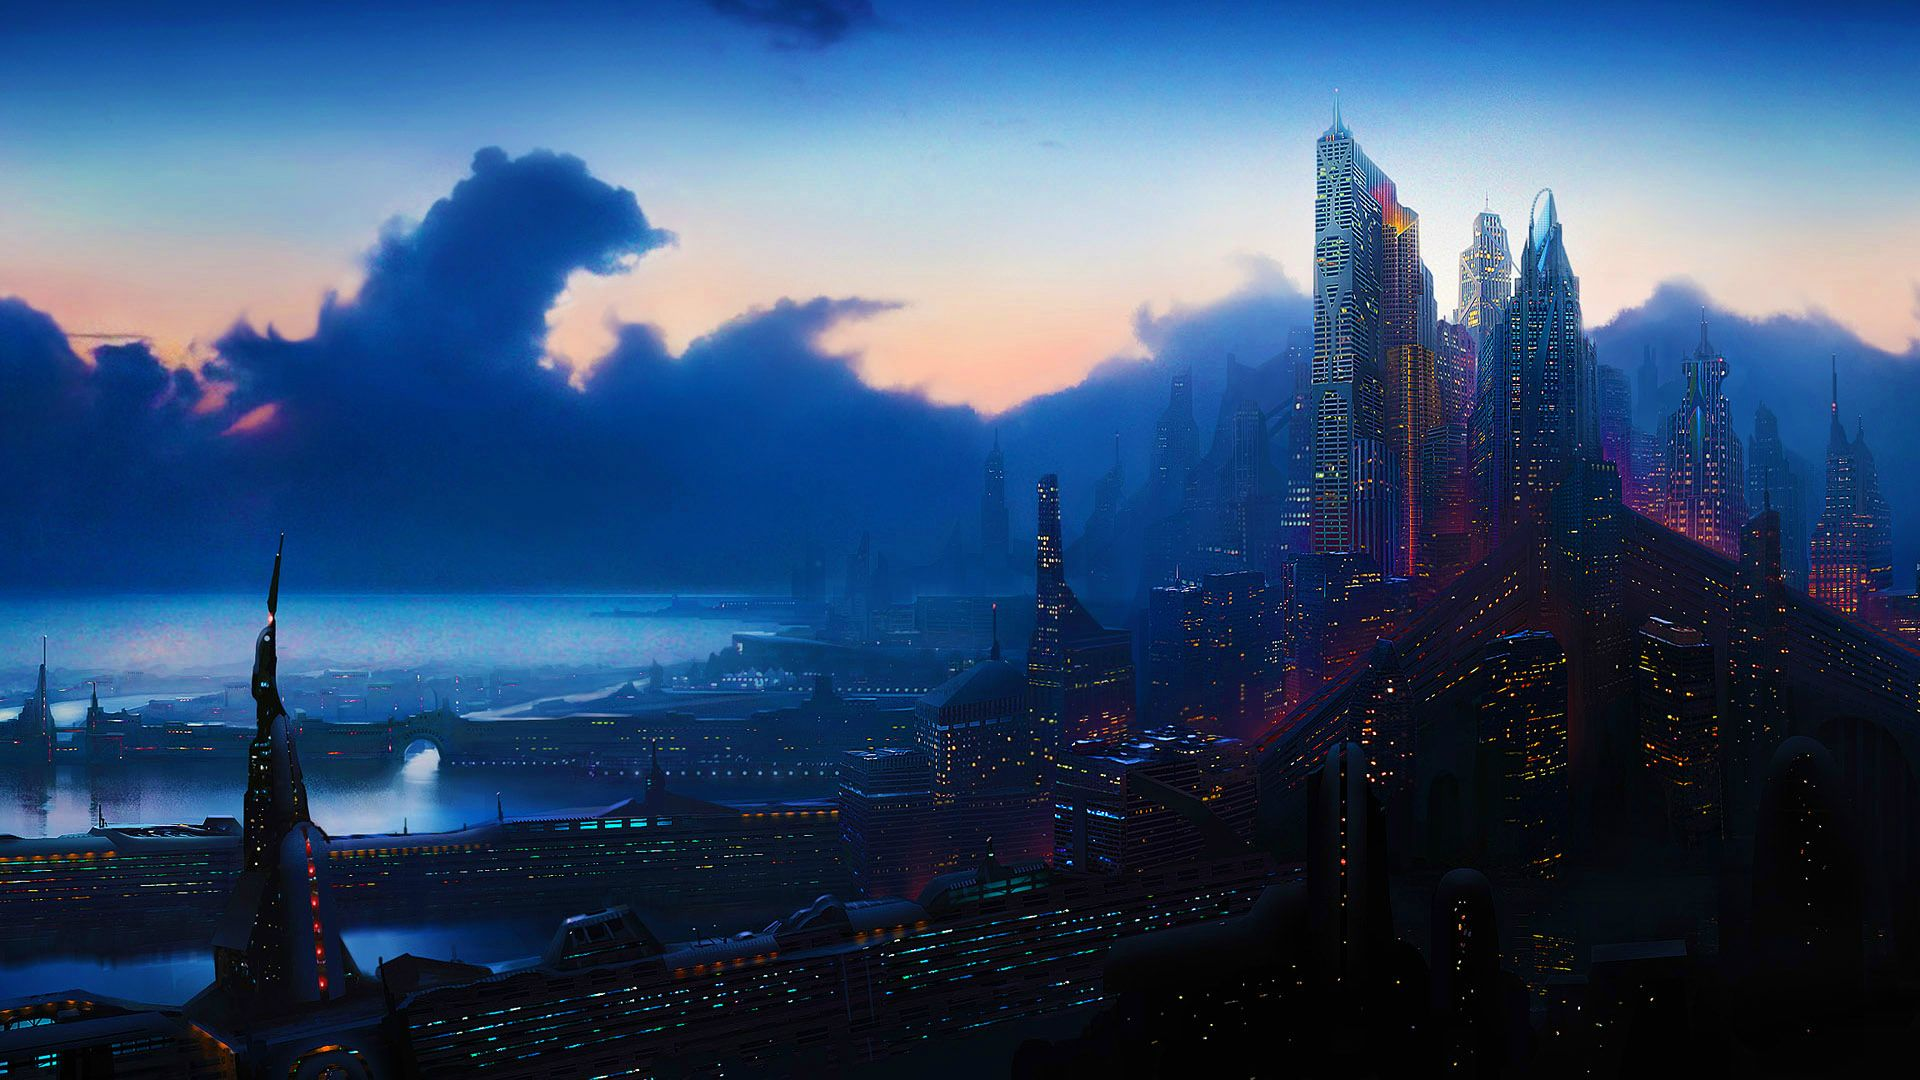 Space Fantasy Wallpaper Set 89 Awesome Wallpapers